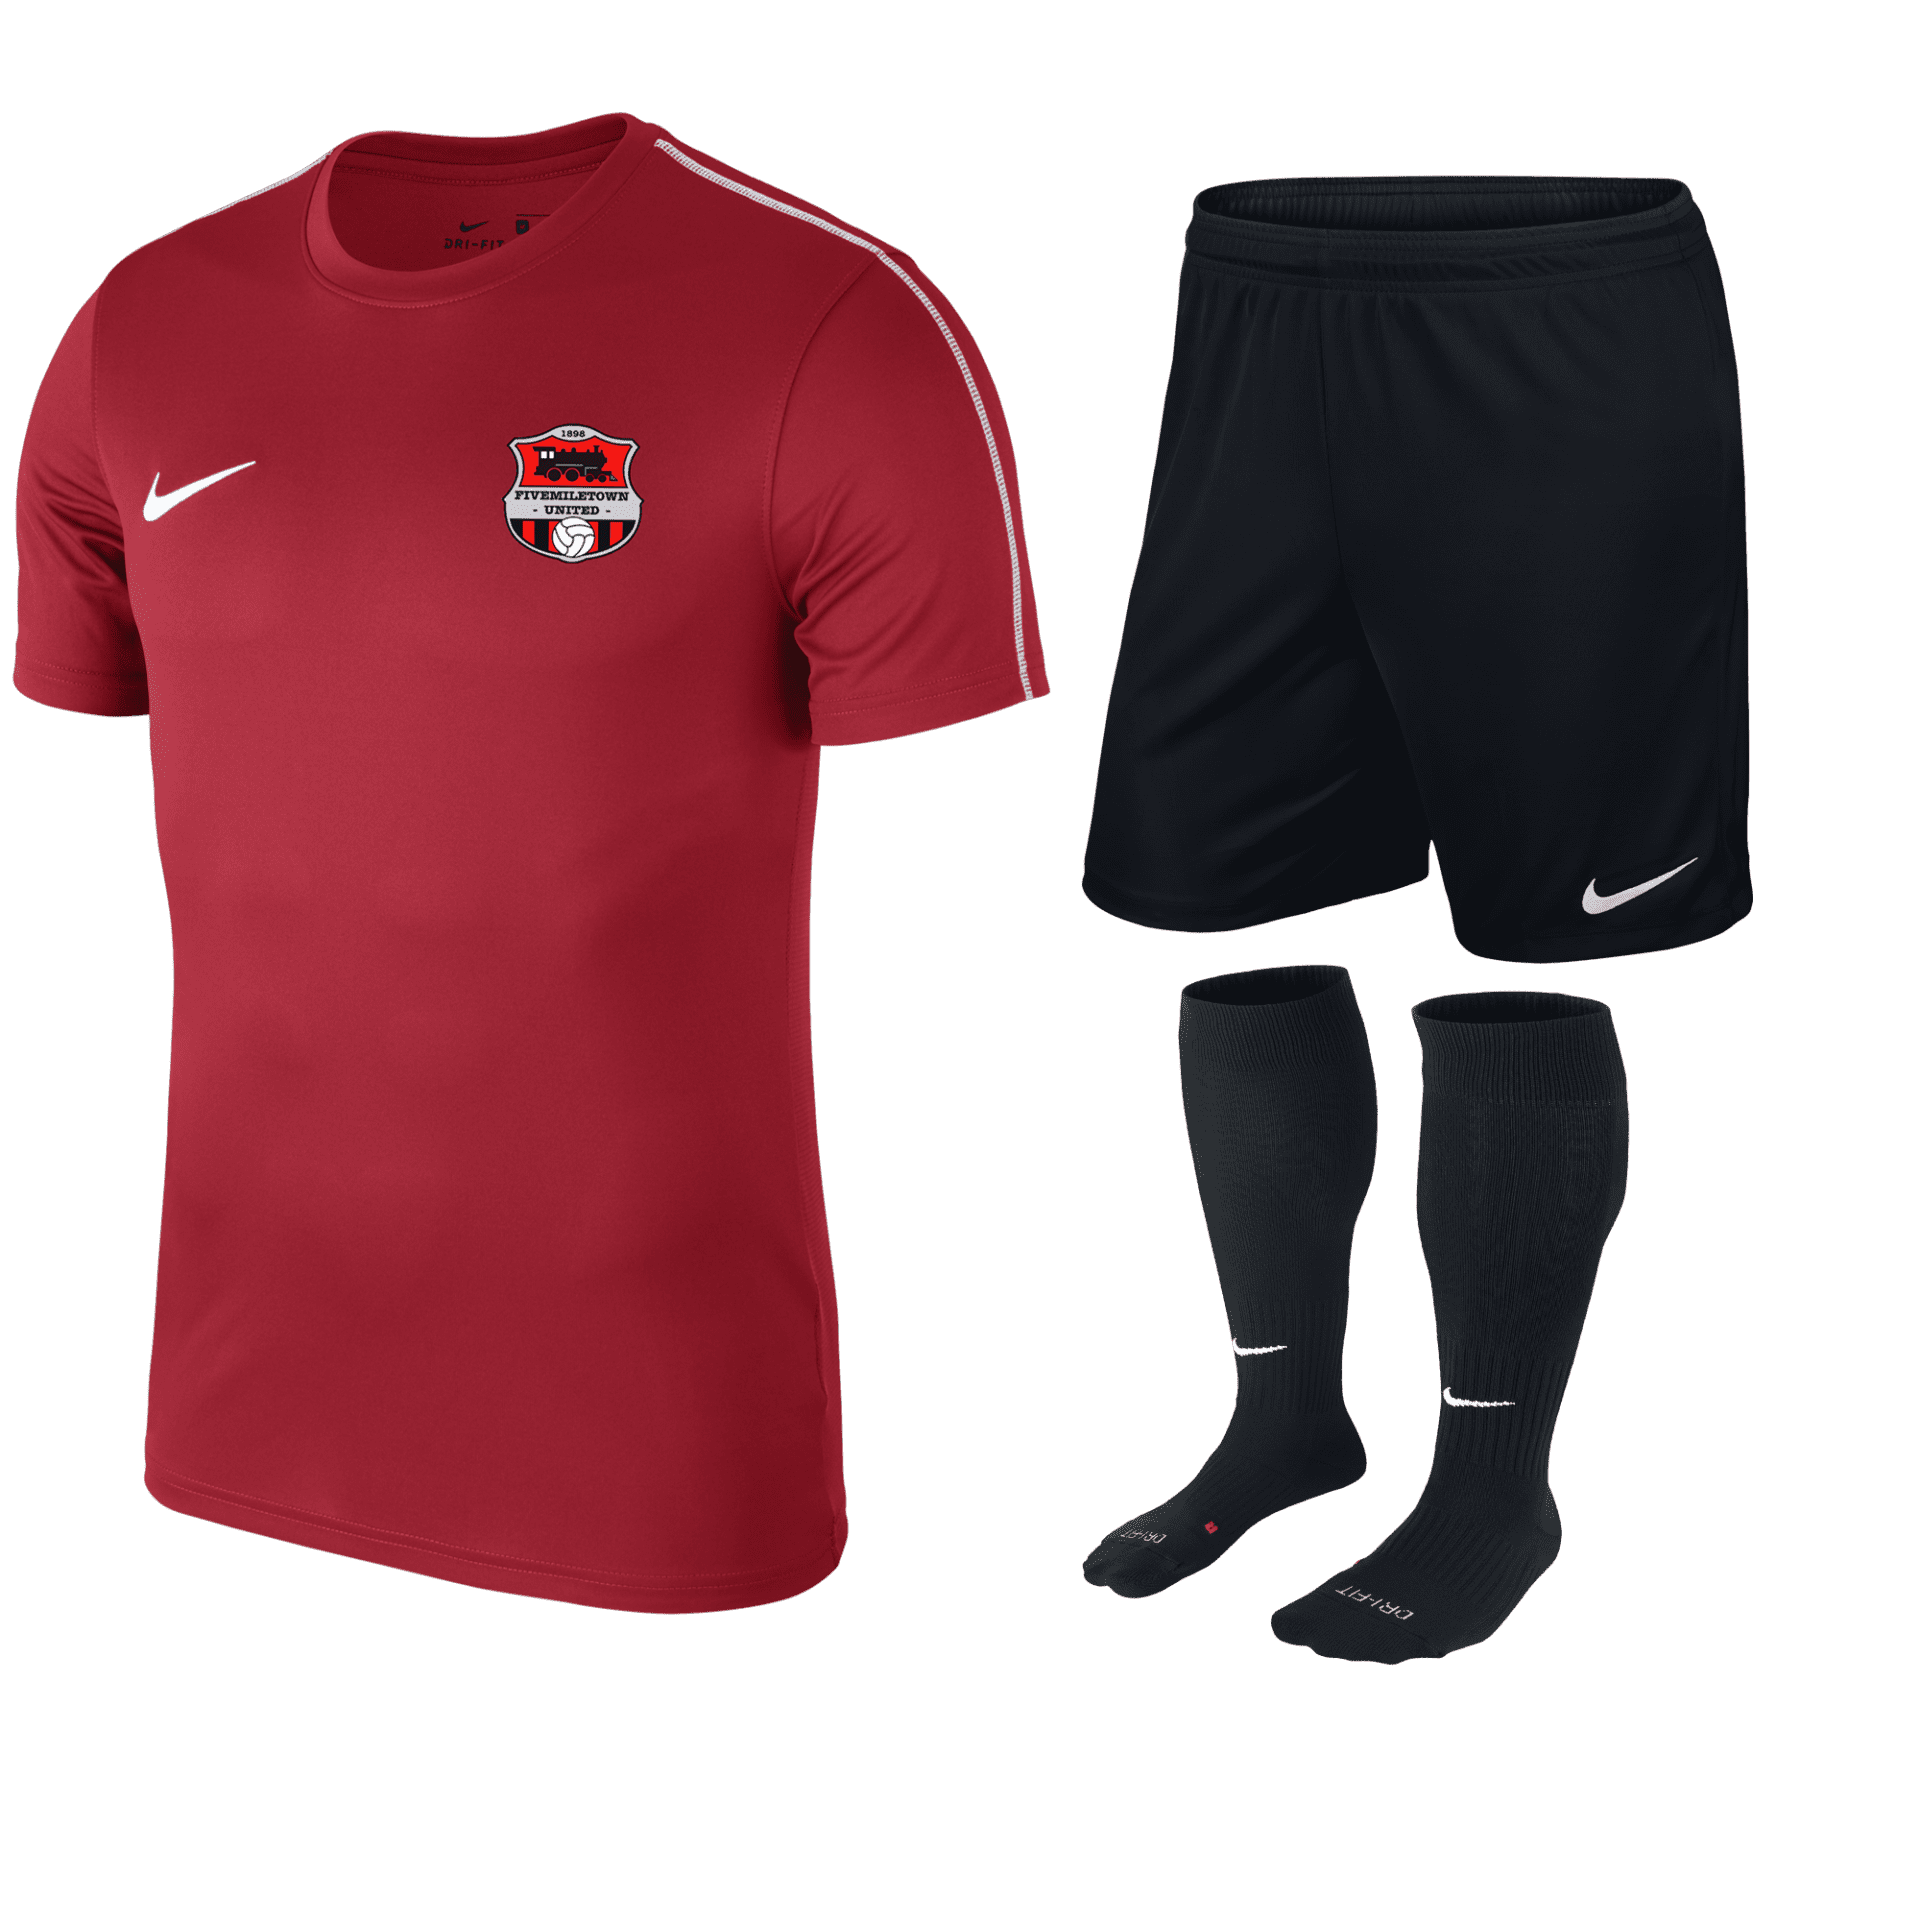 fivemiletown utd training kit 34530 p